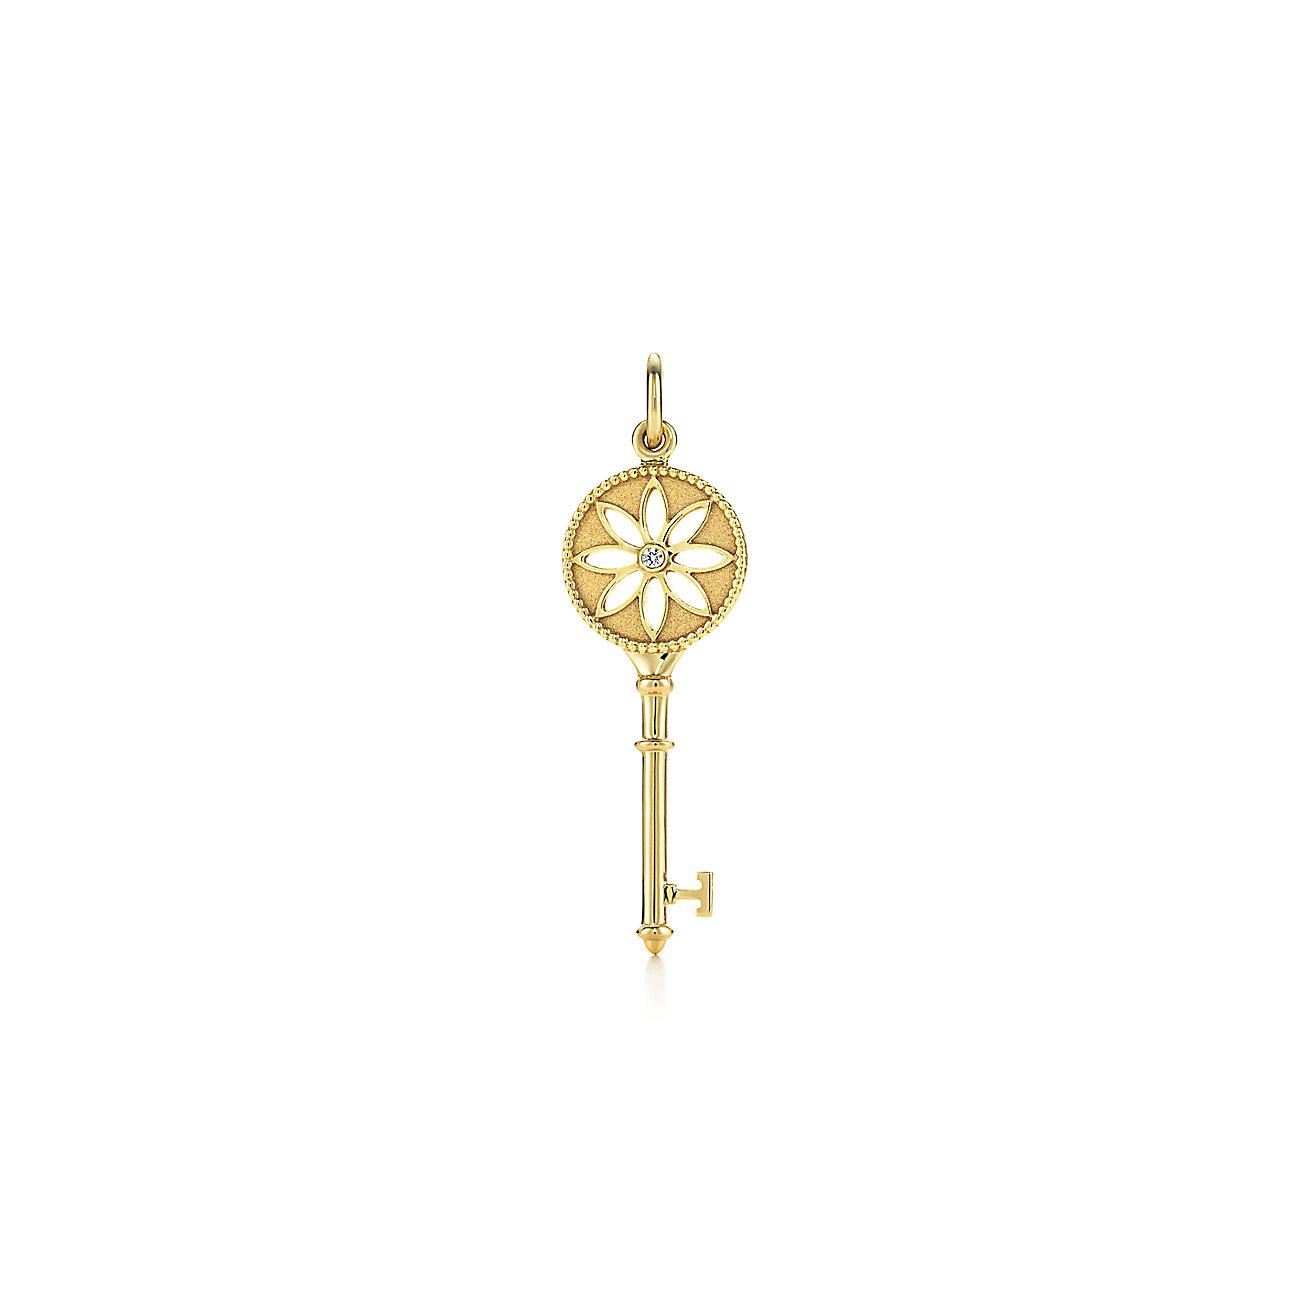 Tiffany Keys Daisy Key Pendant In 18k Gold With A Diamond Co